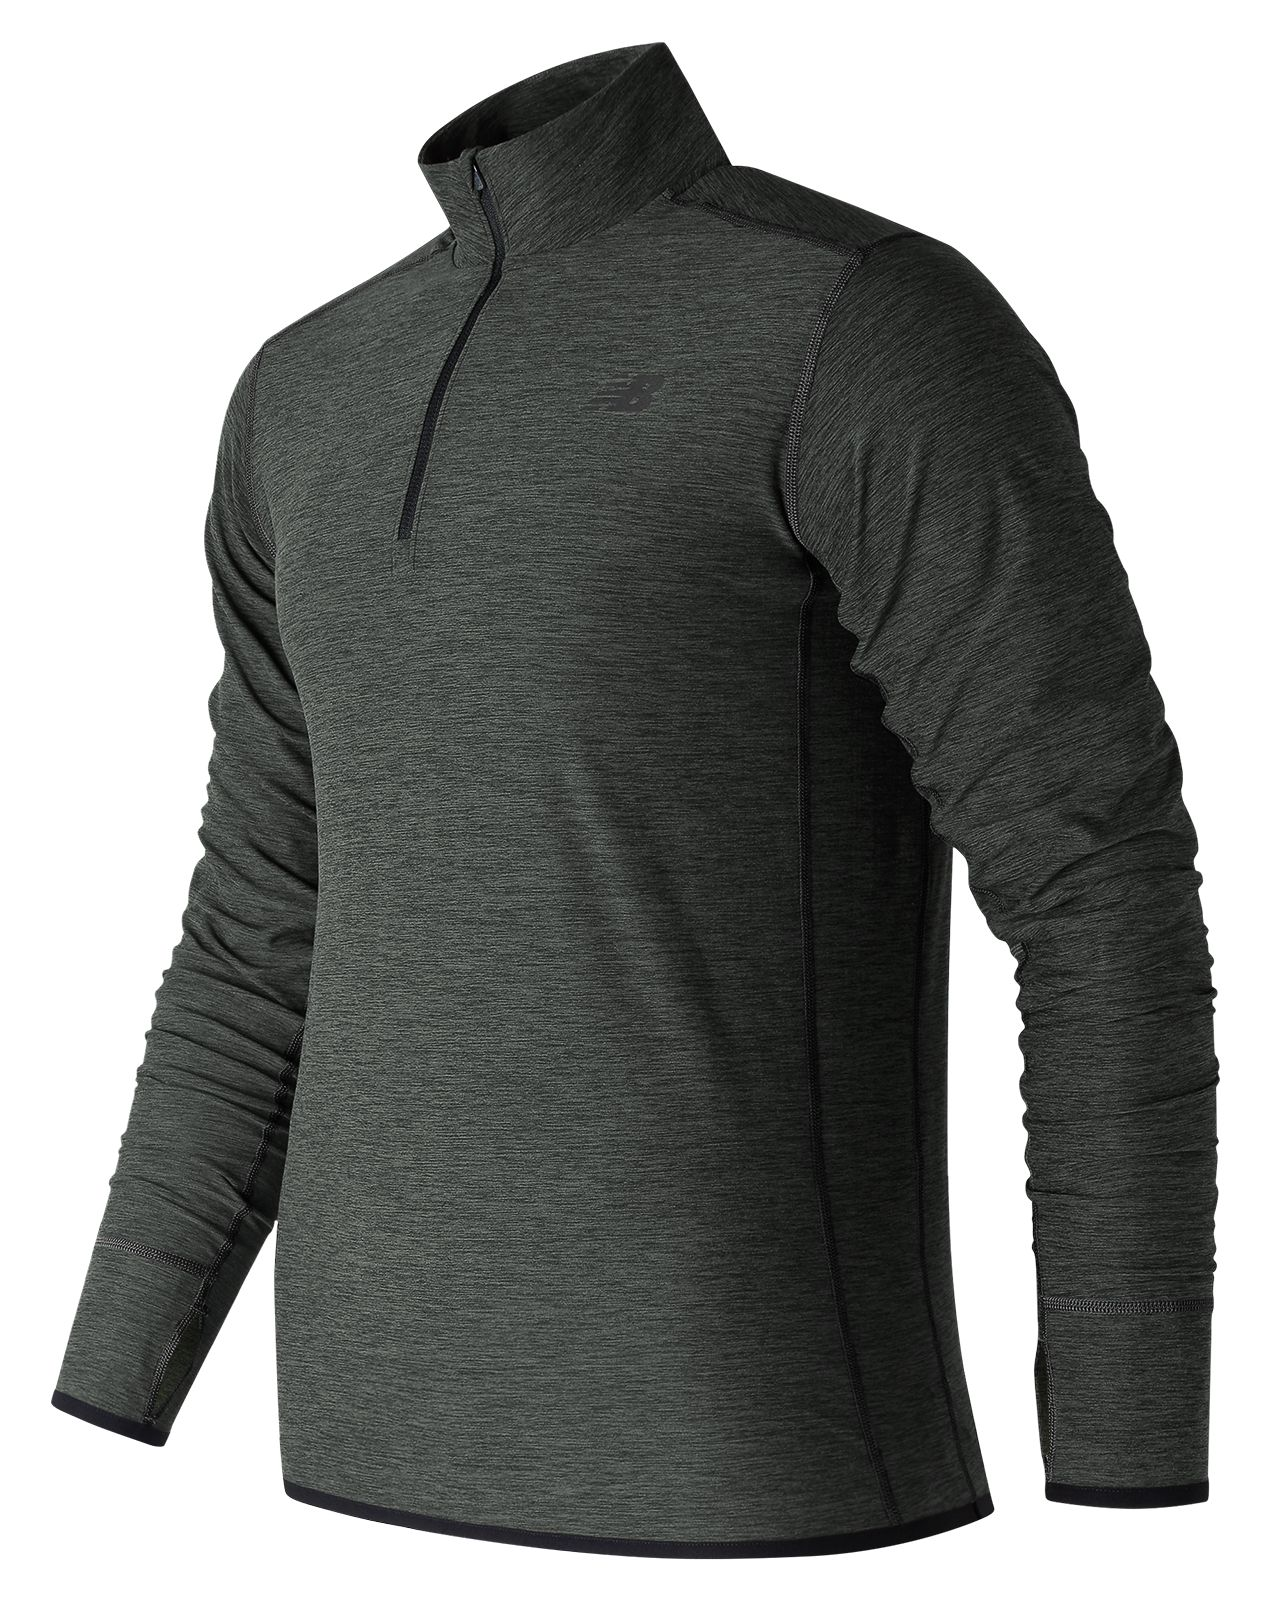 New Balance : N Transit Quarter Zip : Men's Performance : MT53030HC